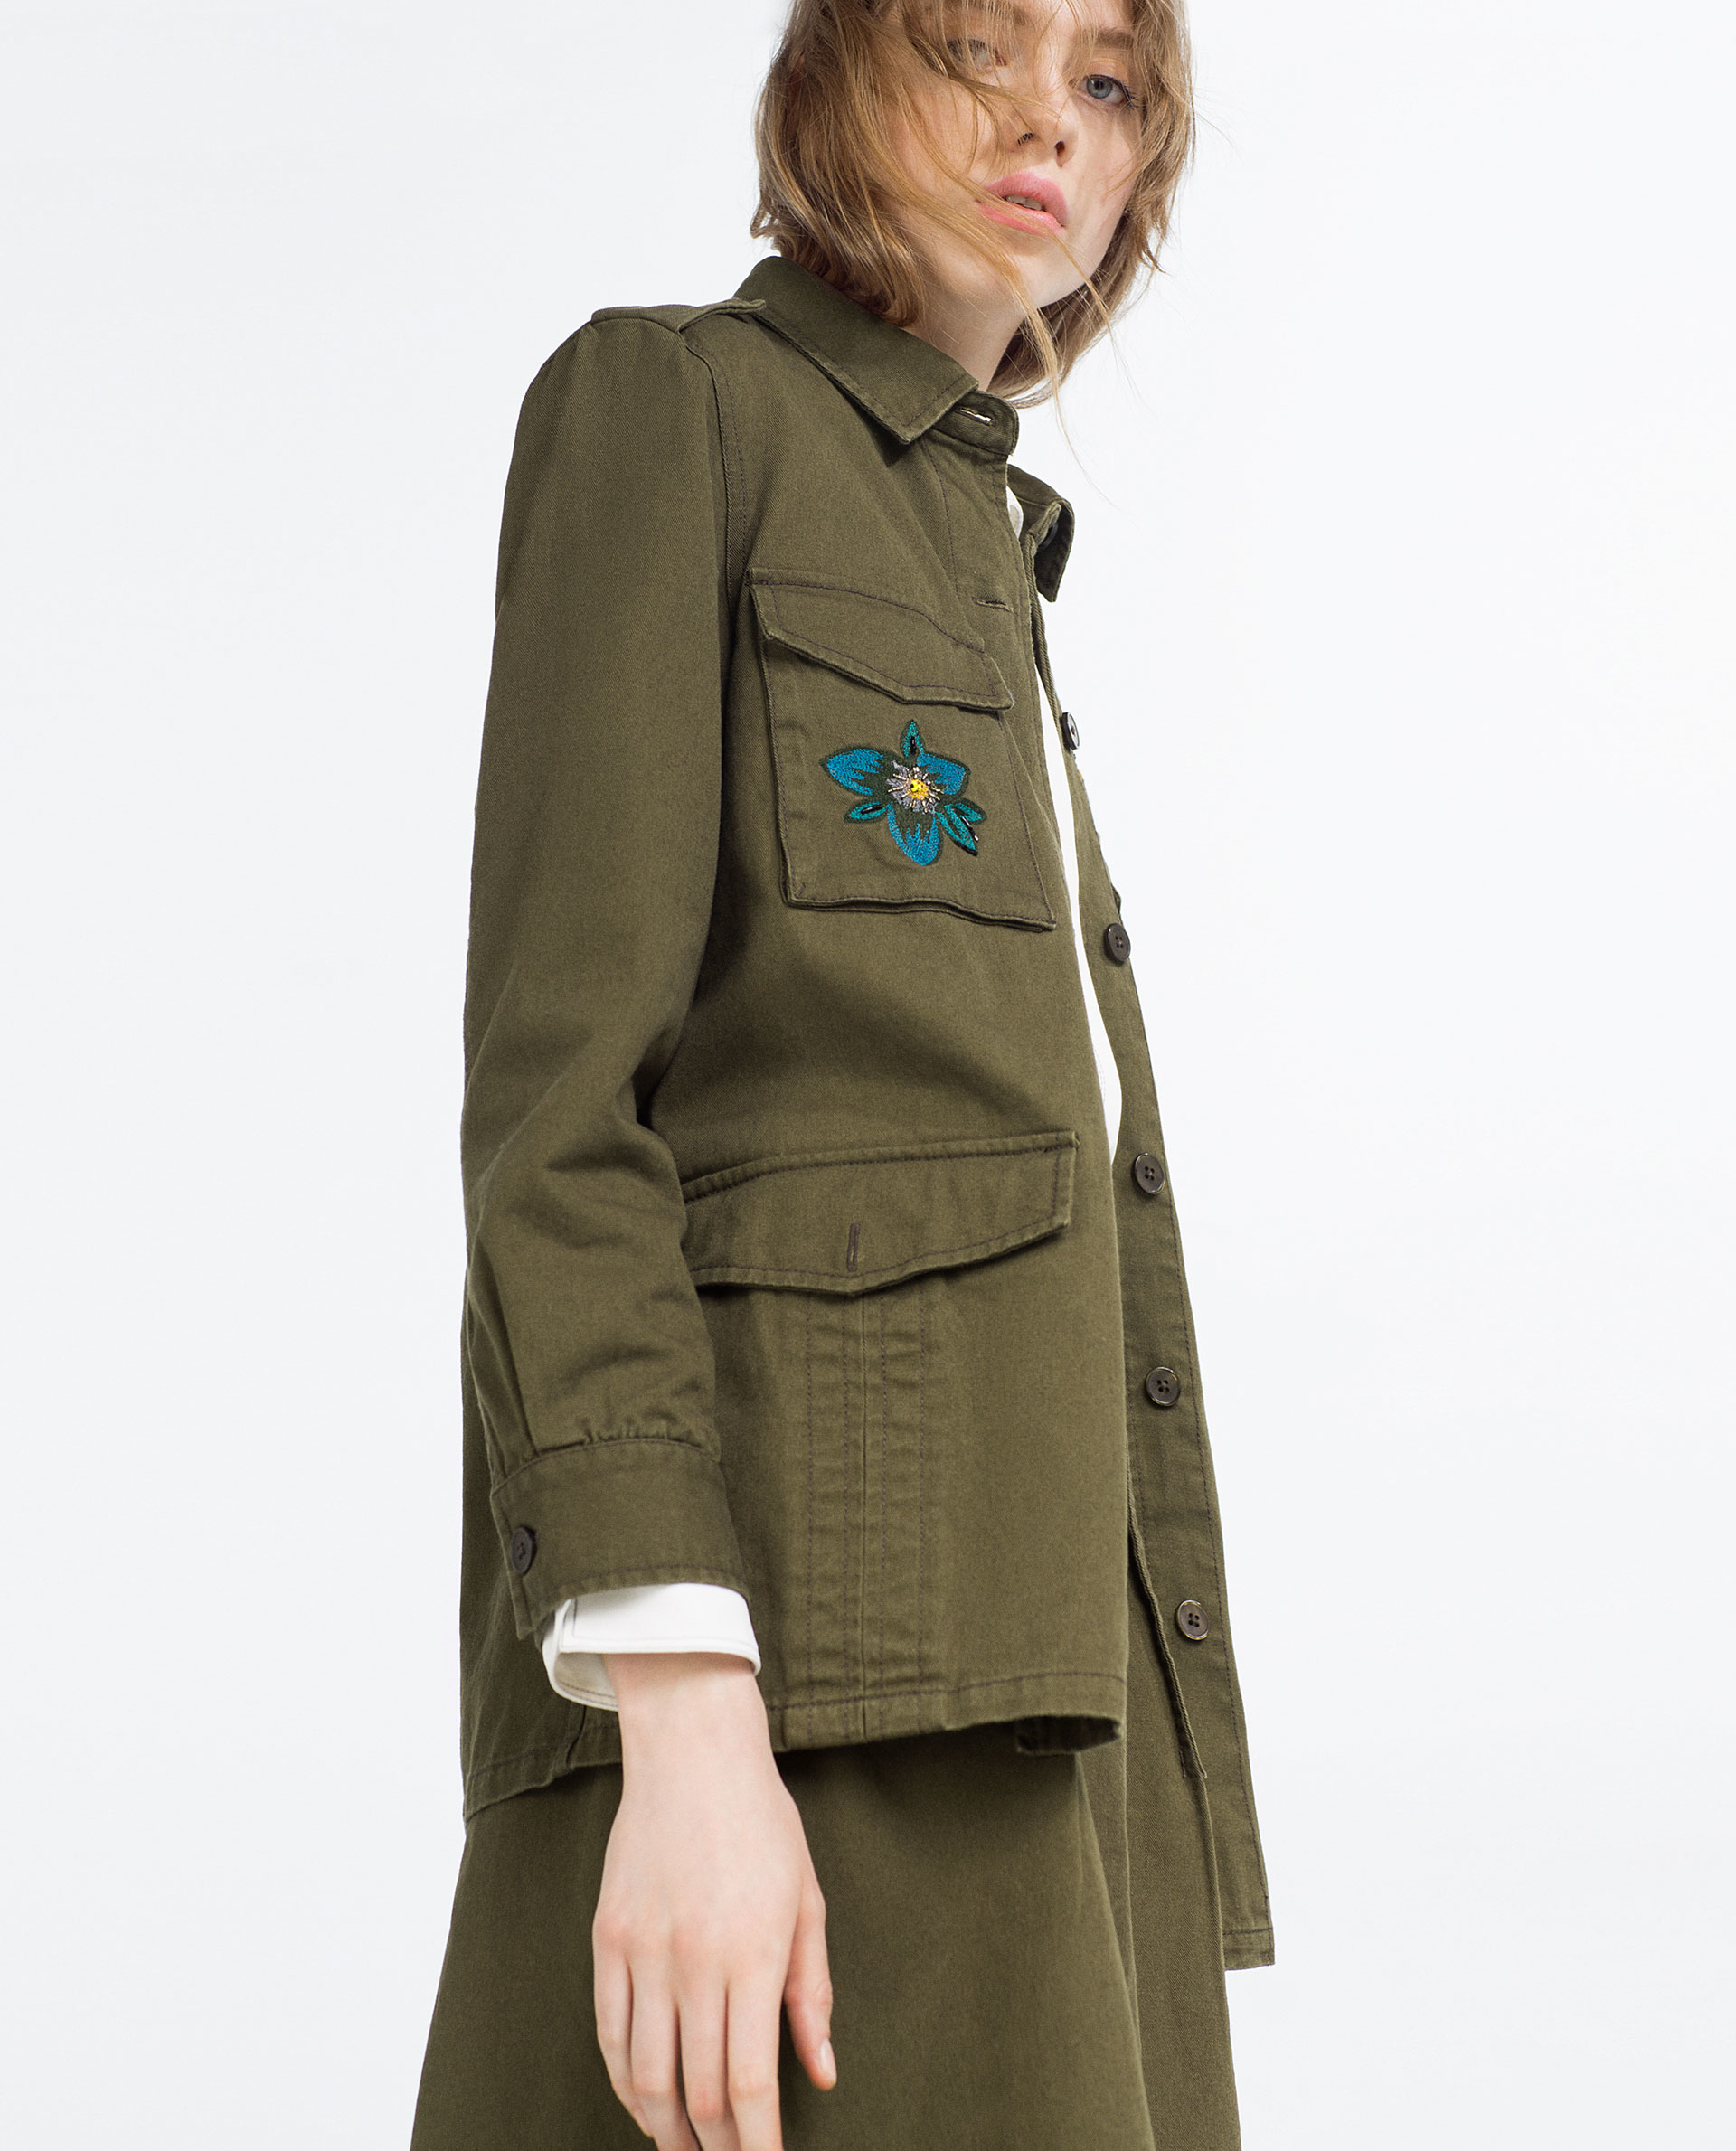 Zara embroidered jacket in natural lyst